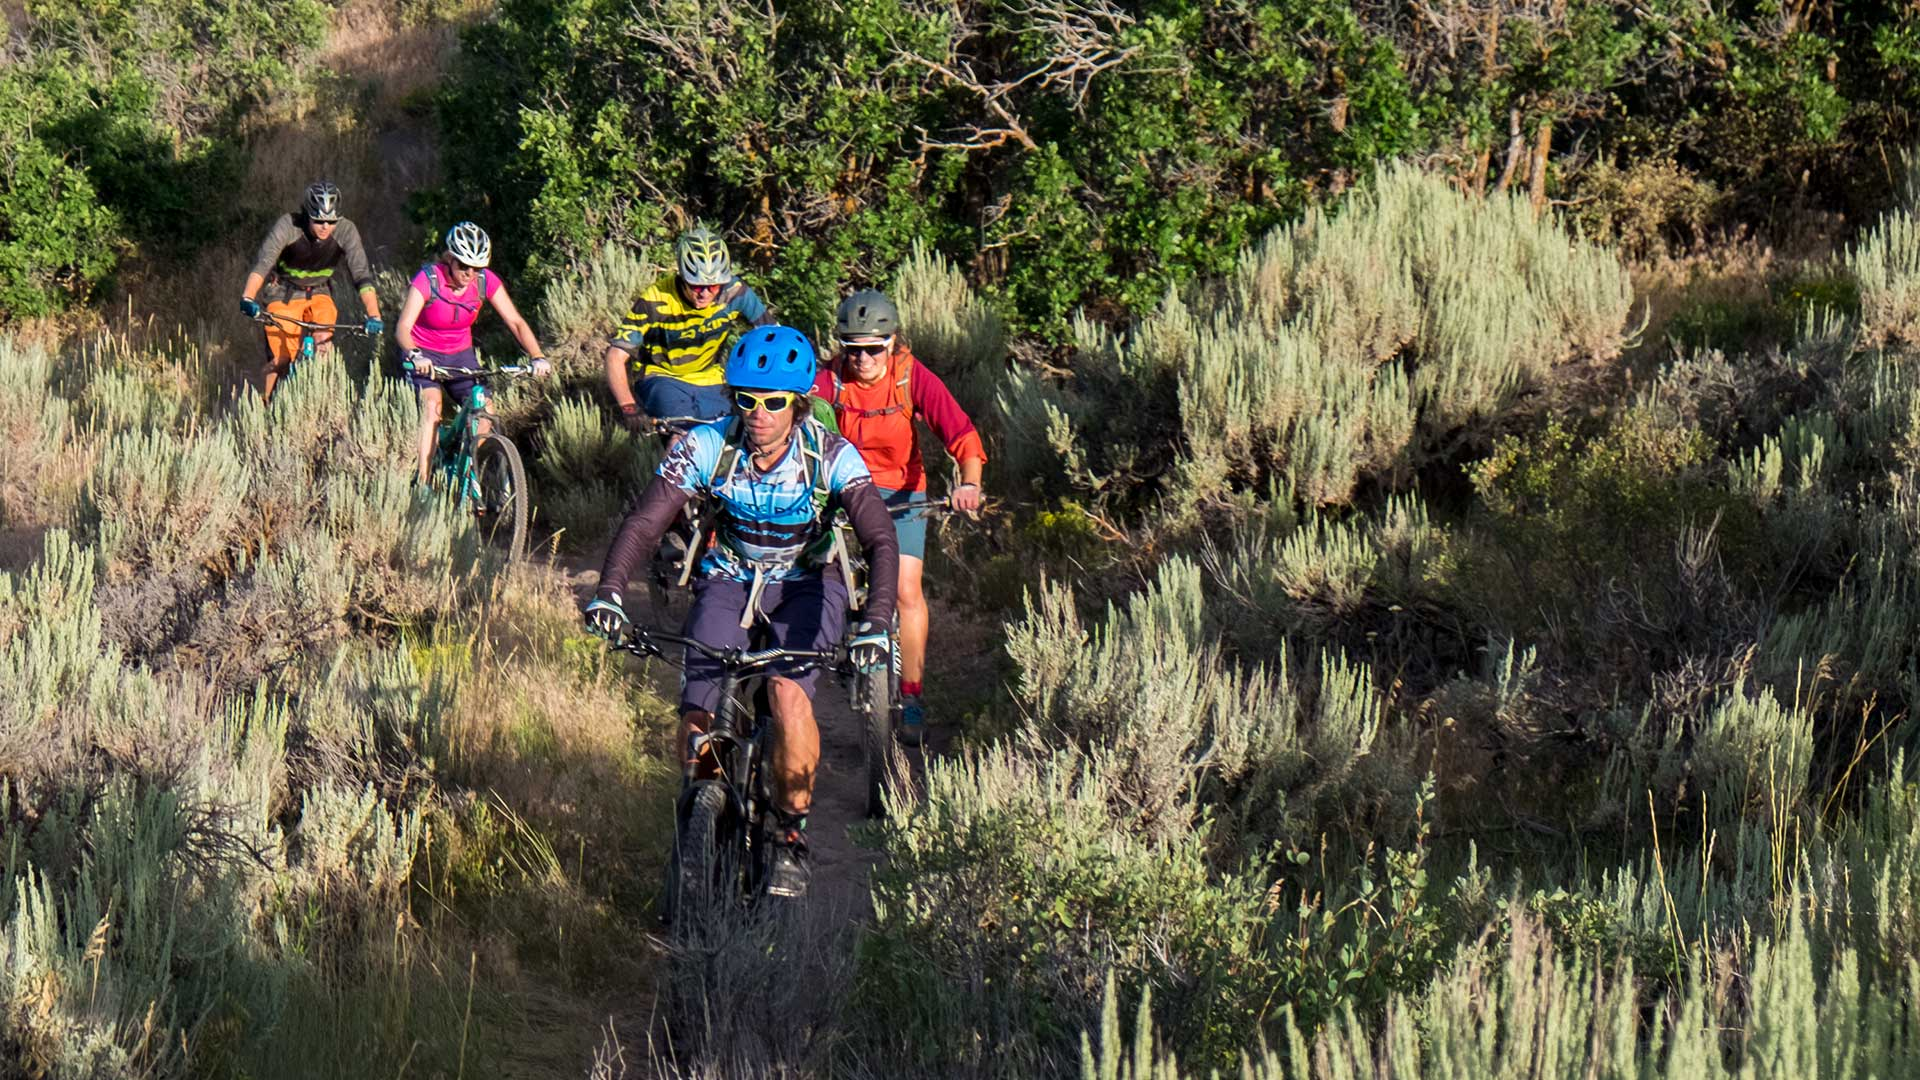 Free Thursday Night Mountain Biking Group Ride from White Pine Touring in Park City, UT.